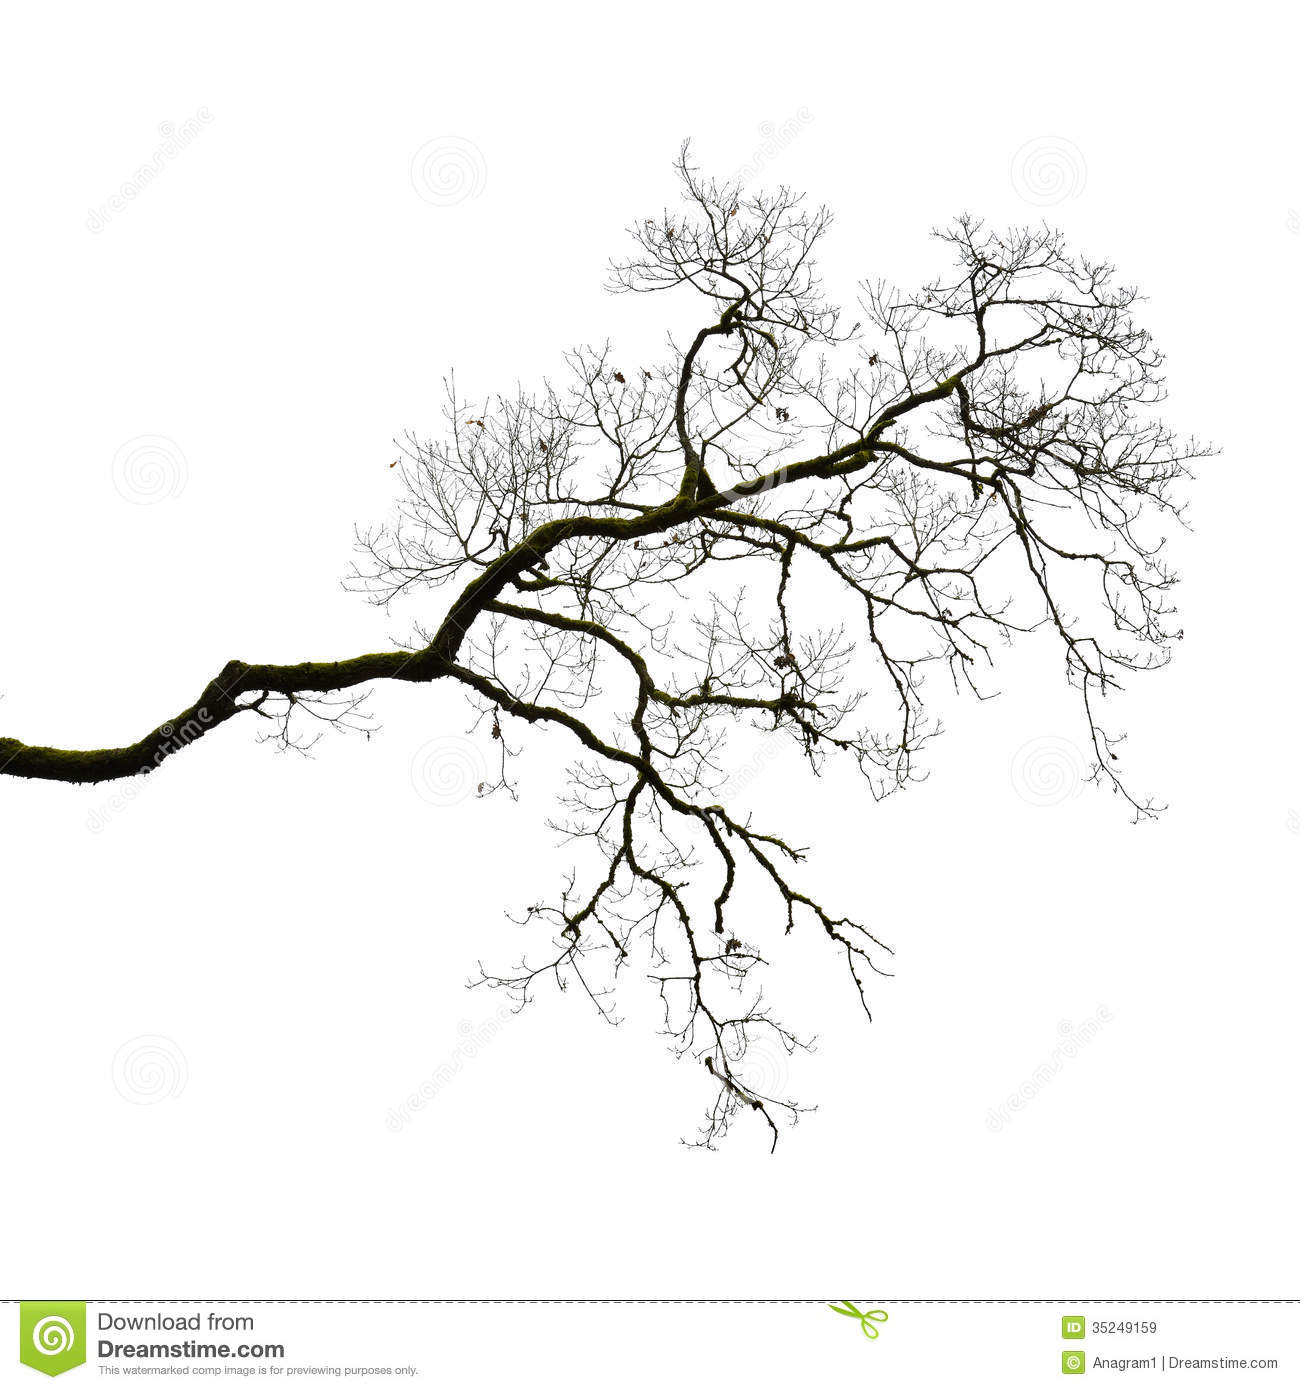 Silhouette of a leafless branch